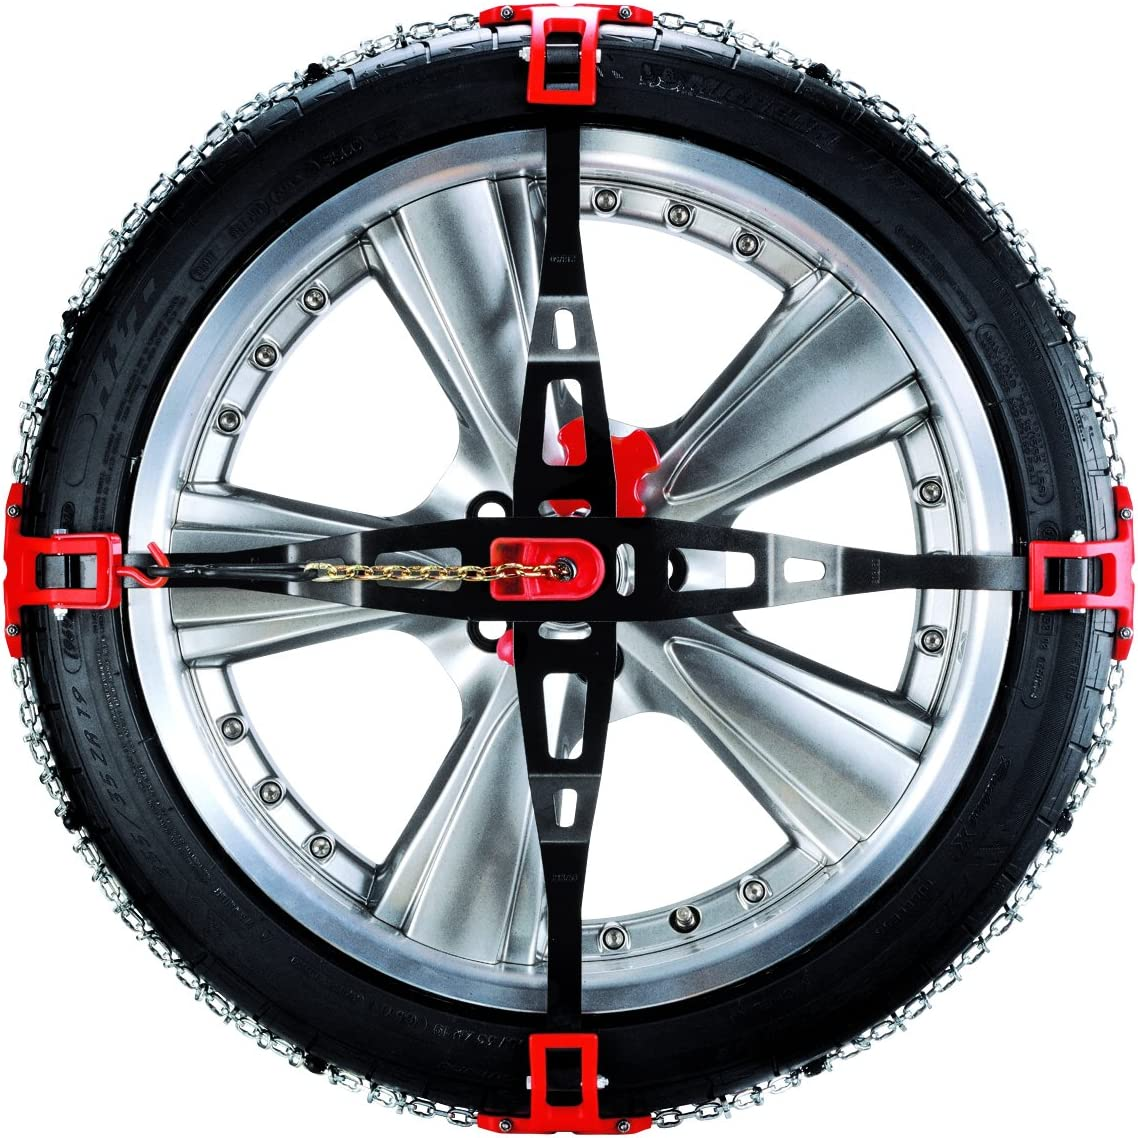 MAGGI TrakSport215 Snow Chains Type 215